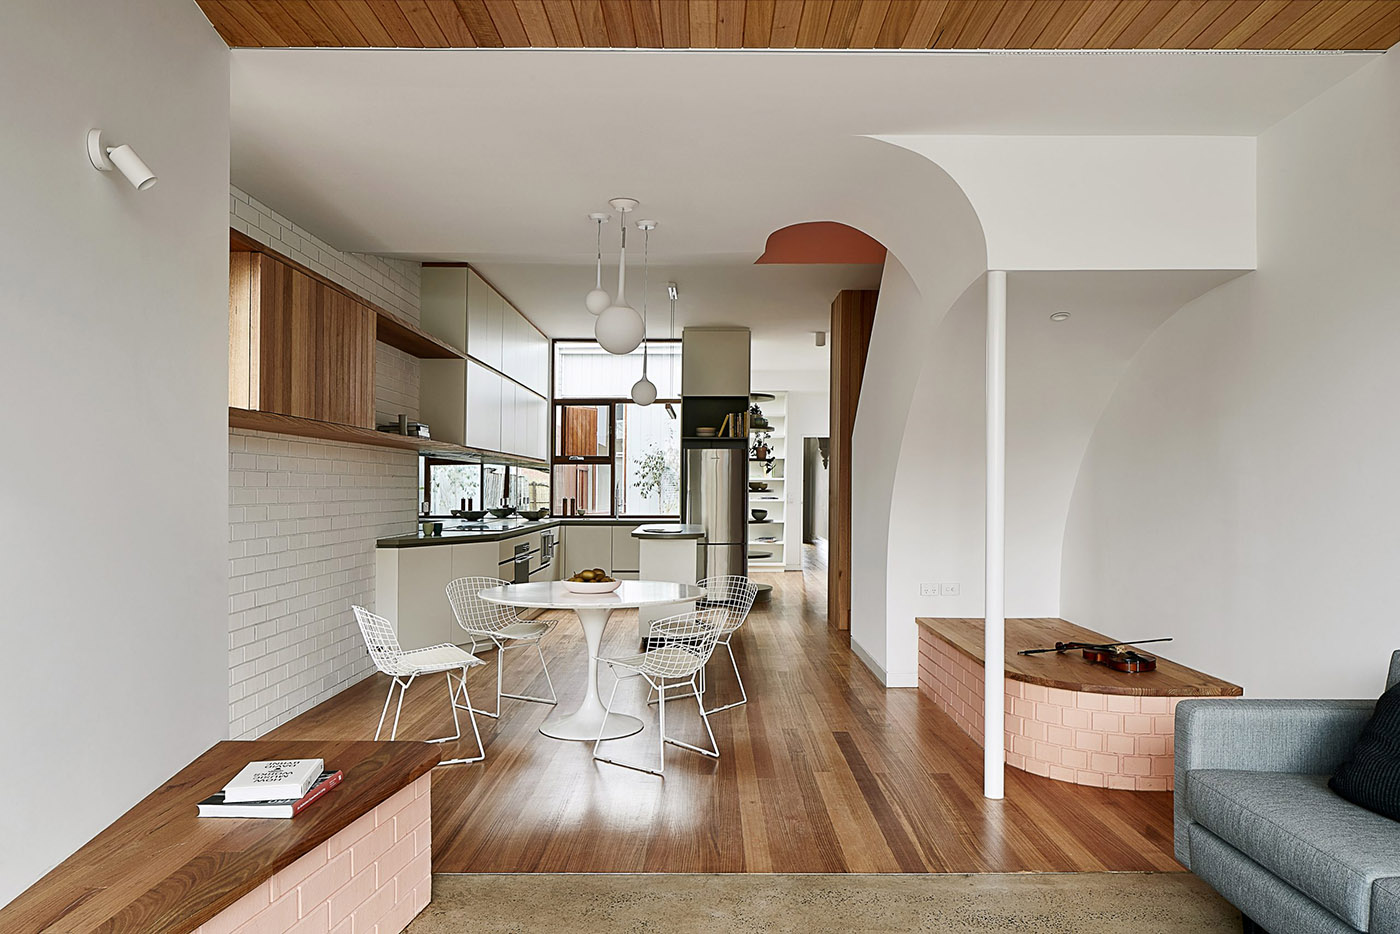 Feng Shui House. Designing for harmony and comfort in spaces